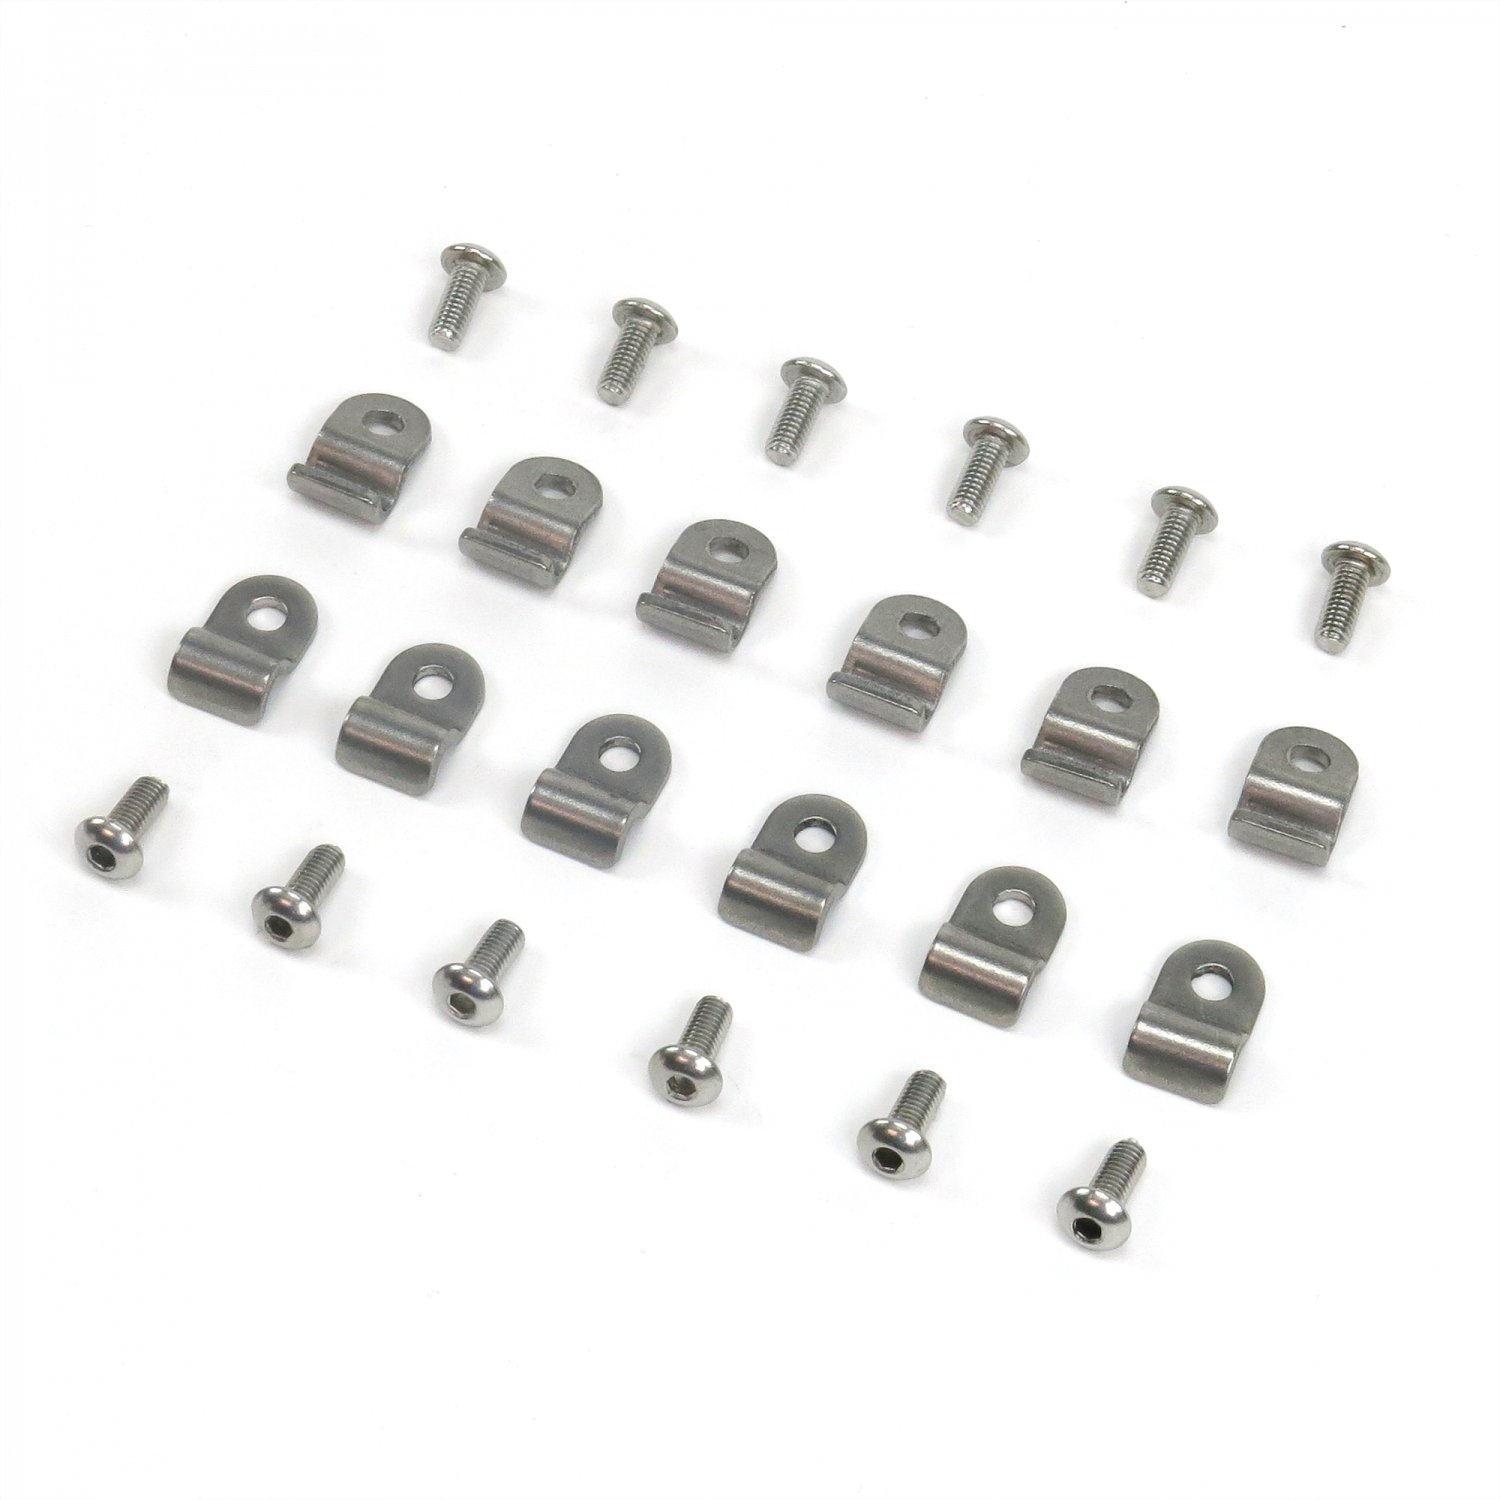 3 16 Stainless Steel Brake Line Clamps Clips Screws